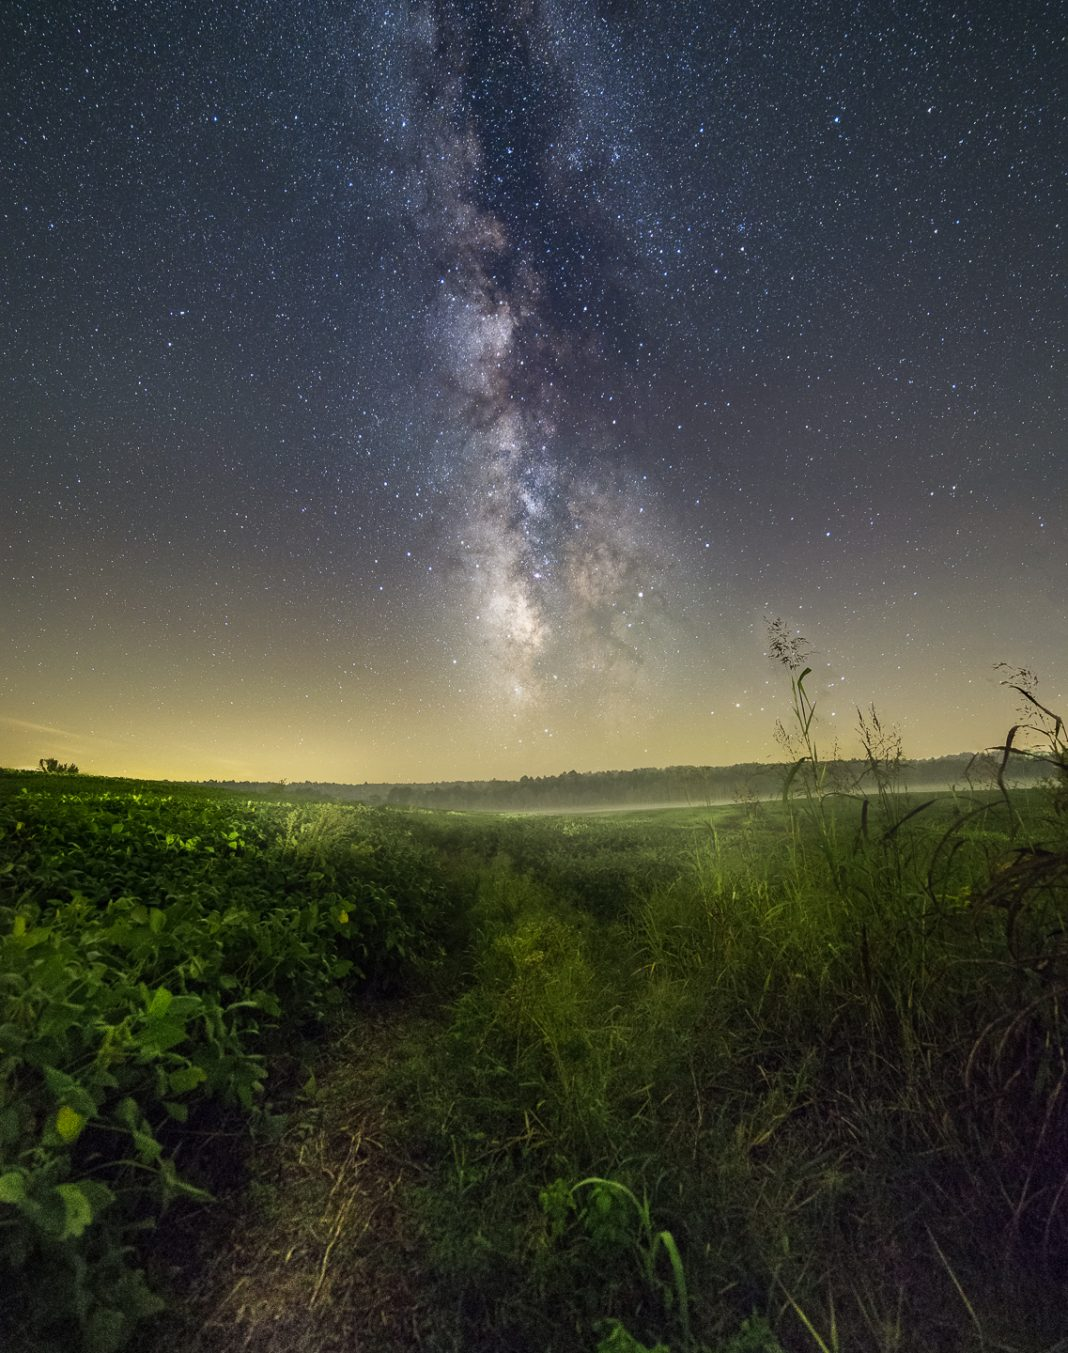 Future Proof Your Milky Way Photos - Dean Vinson